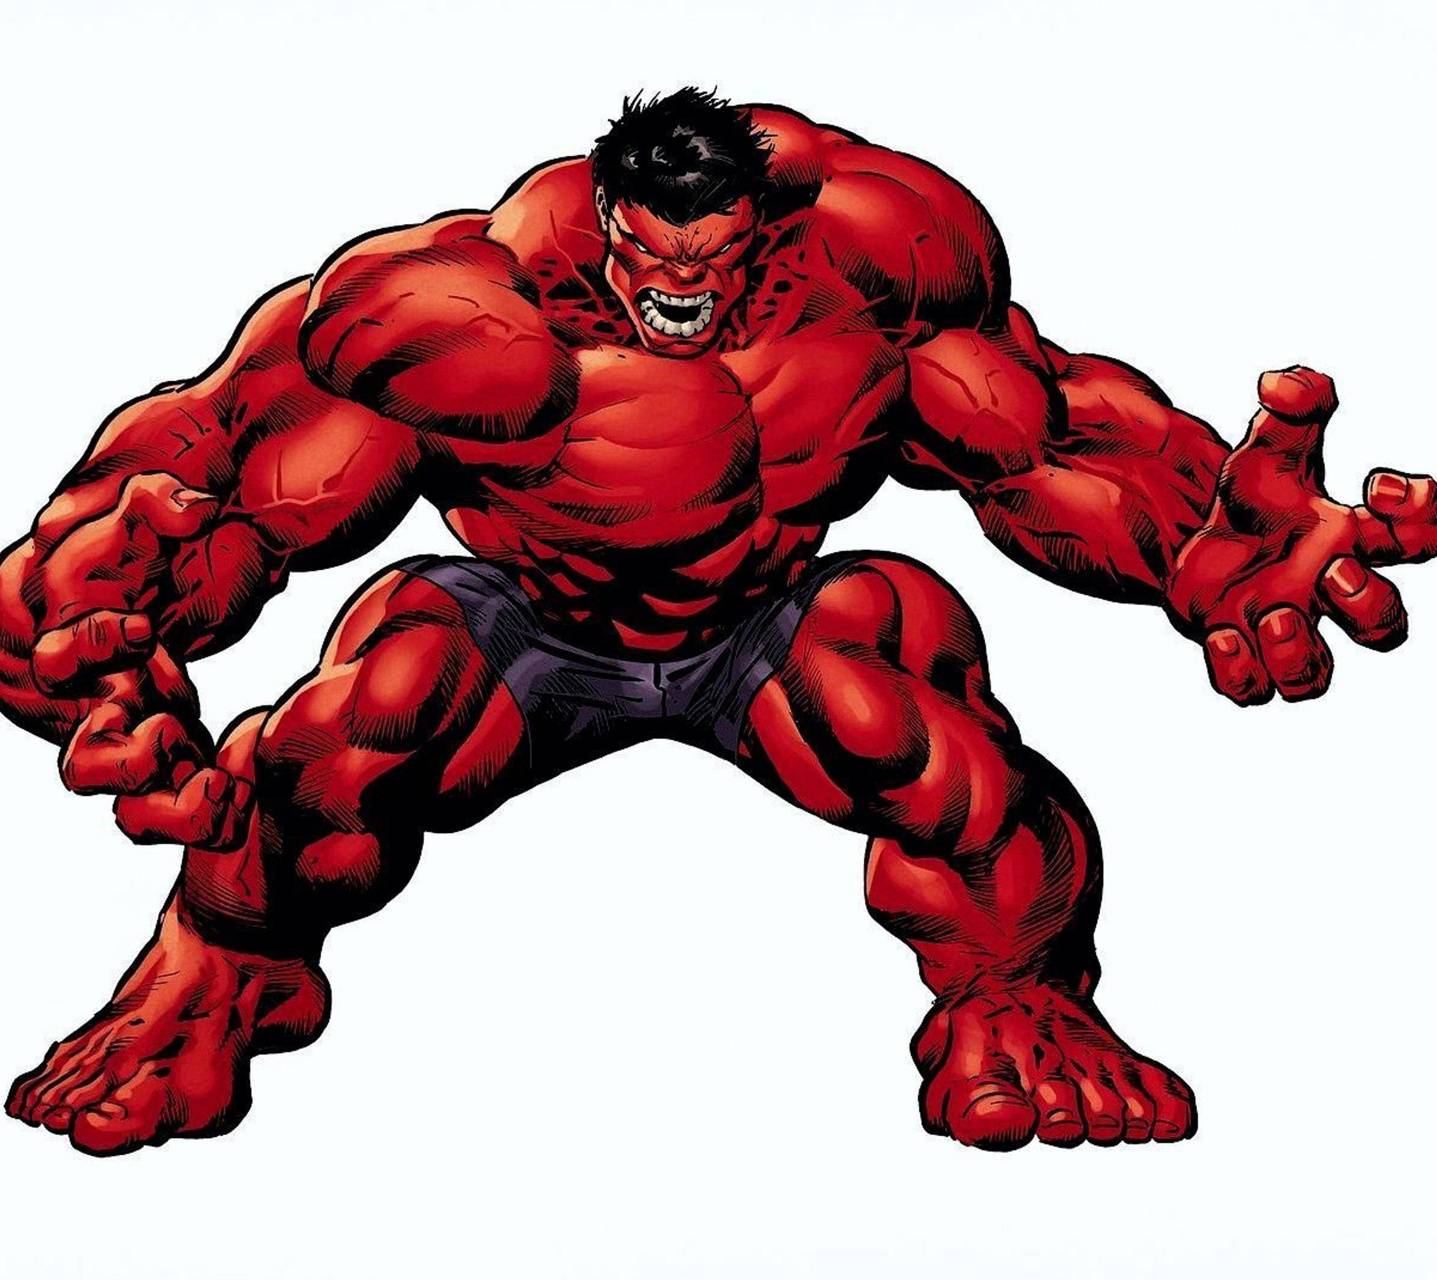 Angry red Hulk